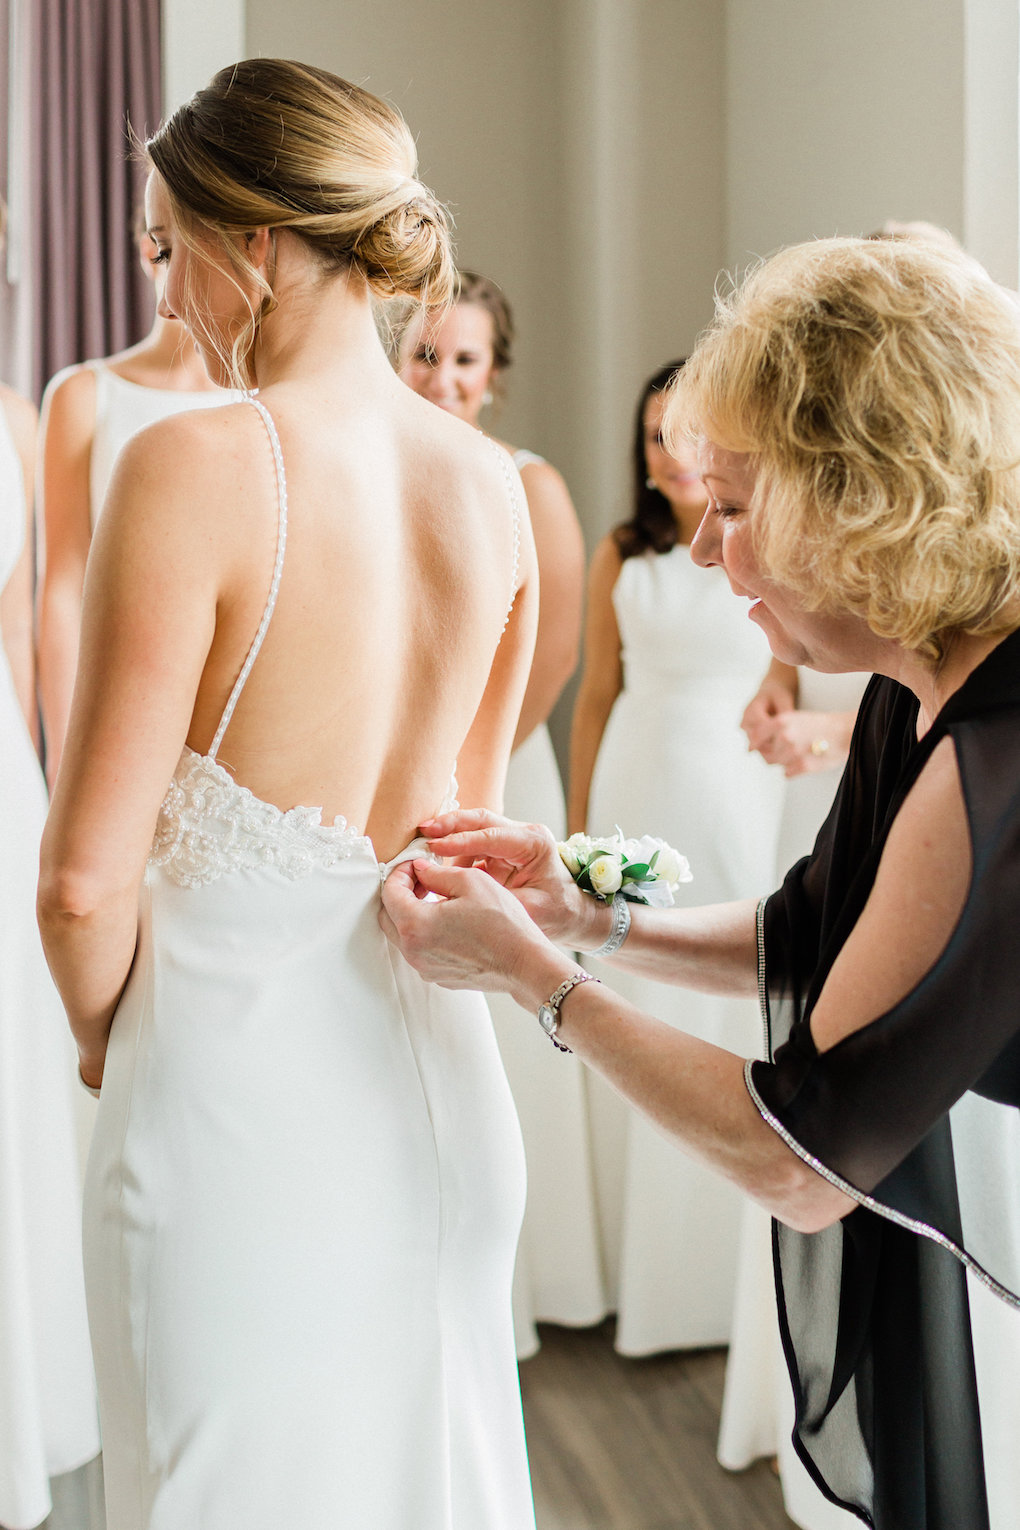 Bride getting into wedding dress for chic wedding in Buffalo, NY planned by Exhale Events. Find more timeless wedding inspiration at exhale-events.com!